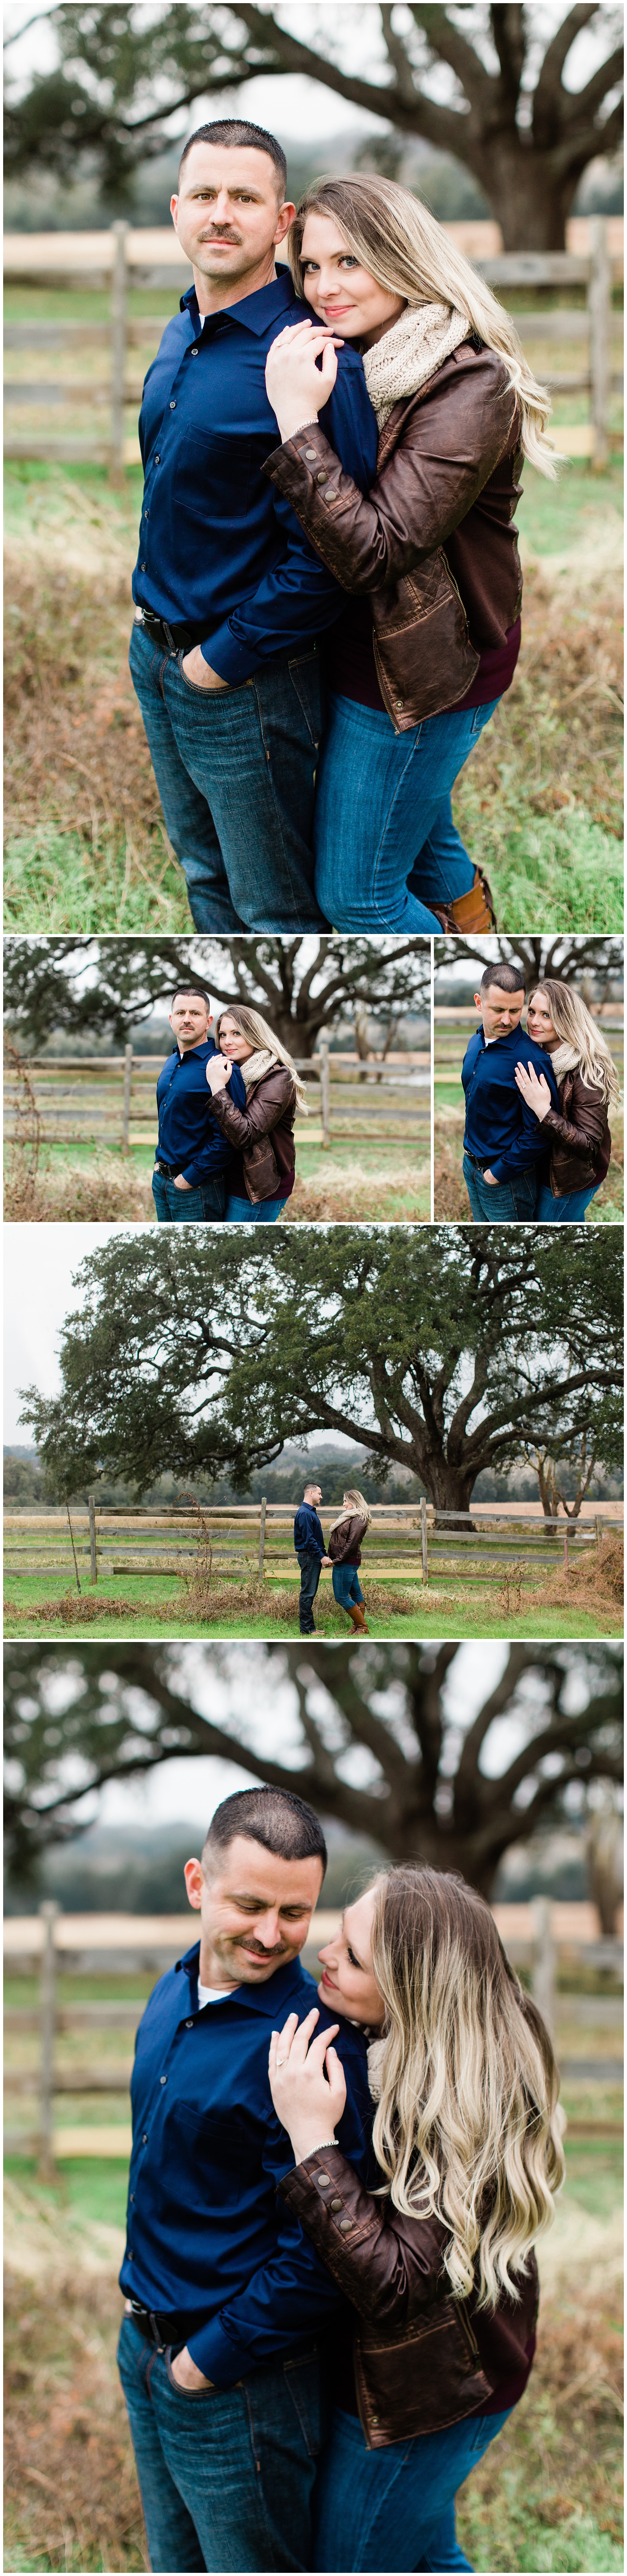 College_Station_Engagement_Session_Kristina_Ross_Photography_0004.jpg